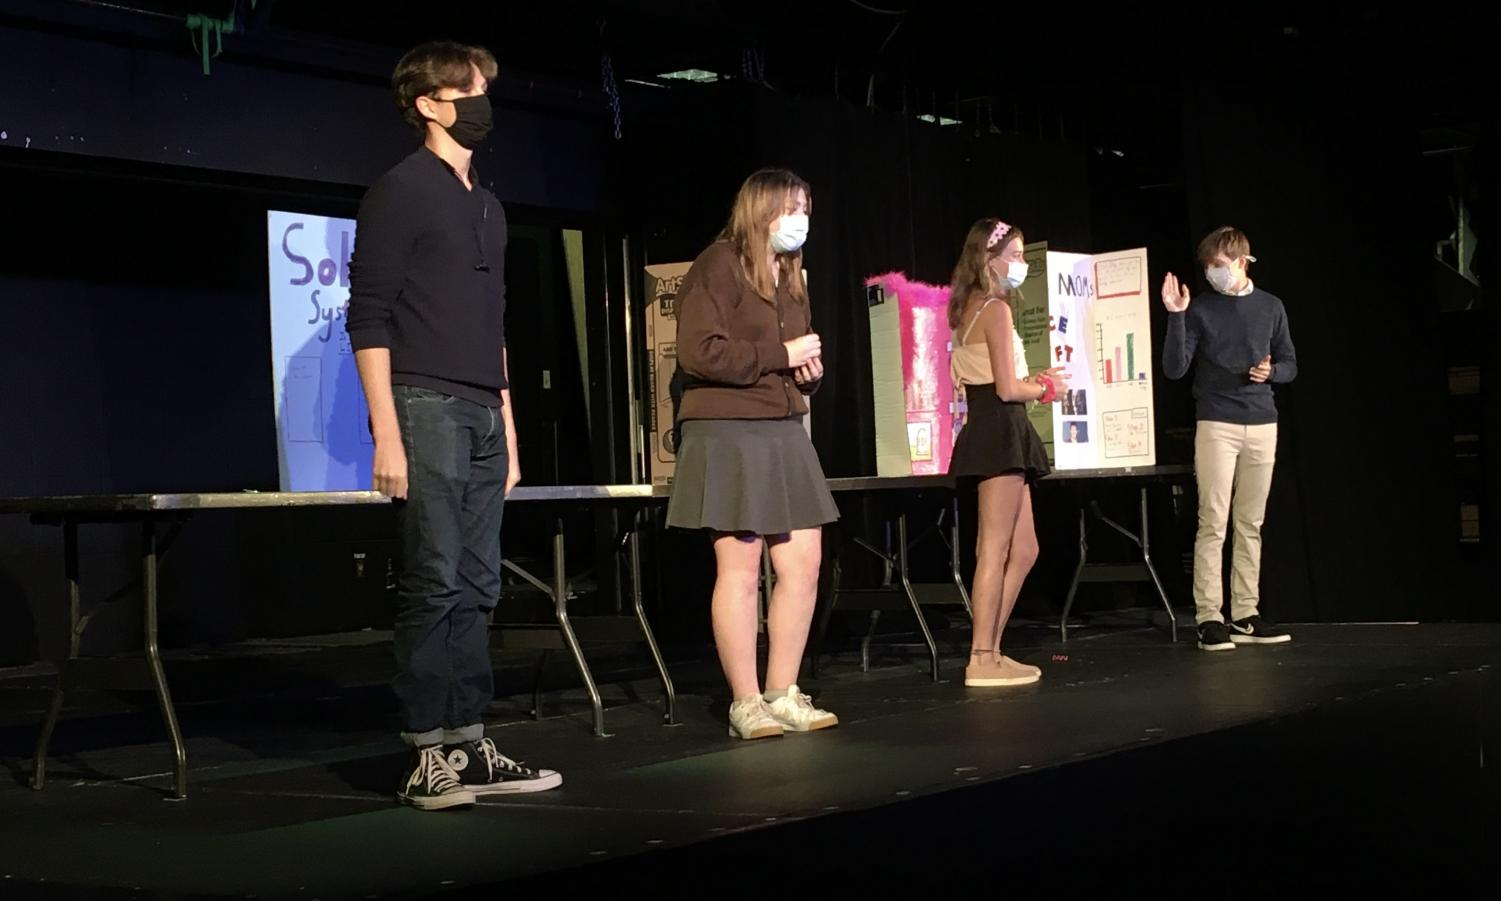 Jack Sullivan, Reagan Nagel, Ella Owens and Theo Curtis rehearse for the Studio One Acts for this upcoming week. They star in the play called Regina Flector Wins the Science Fair directed by senior Muriel Mota Schaffer. Nagel plays Regina, Sullivan plays Bradley, Owens plays Tiffany and Curtis plays Sam.